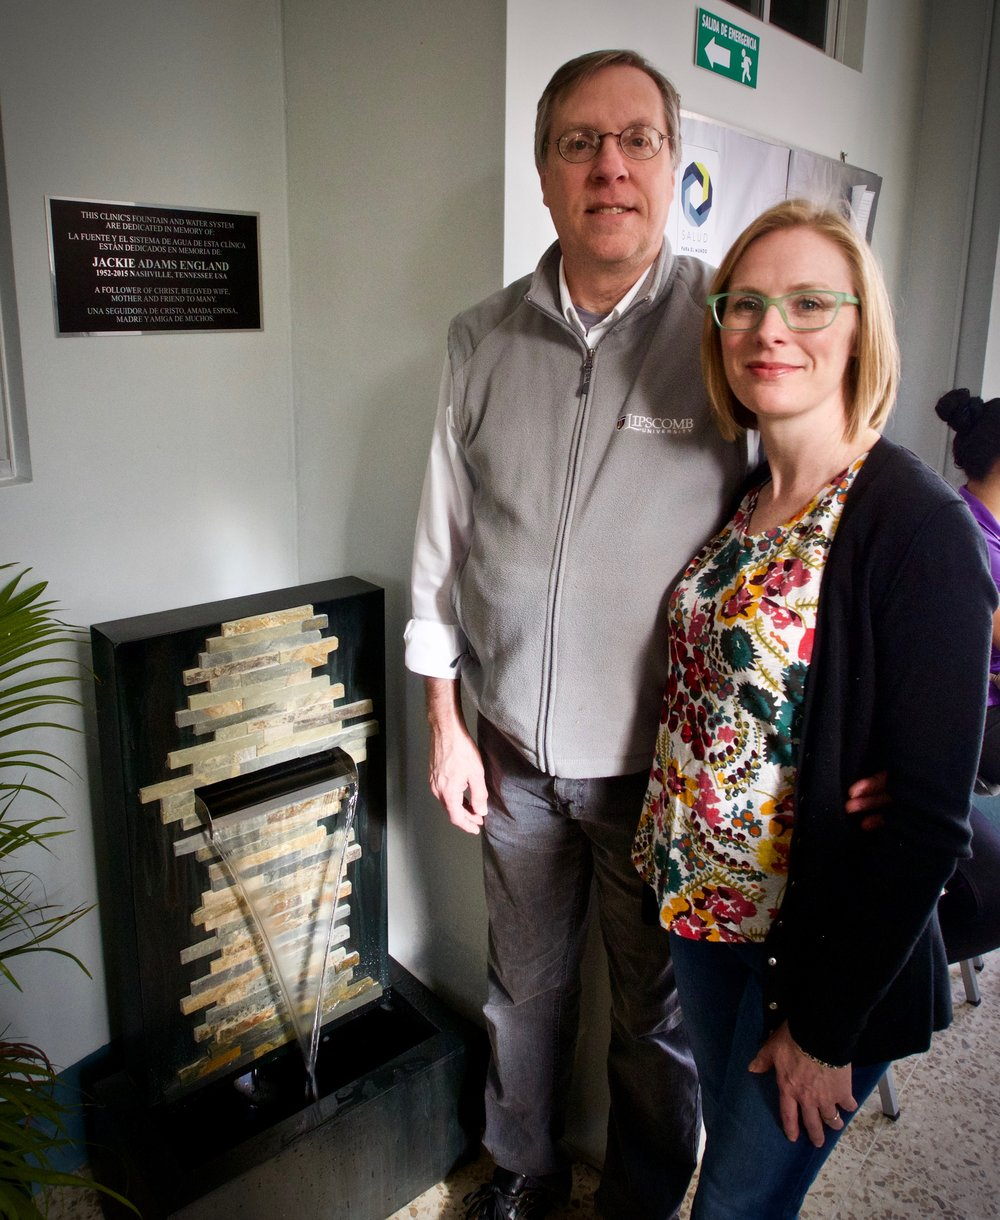 David England and Melody Gurley, Jackie England's husband and daughter, next to the plaque and water feature in Jackie's memory, placed in the clinic waiting area.